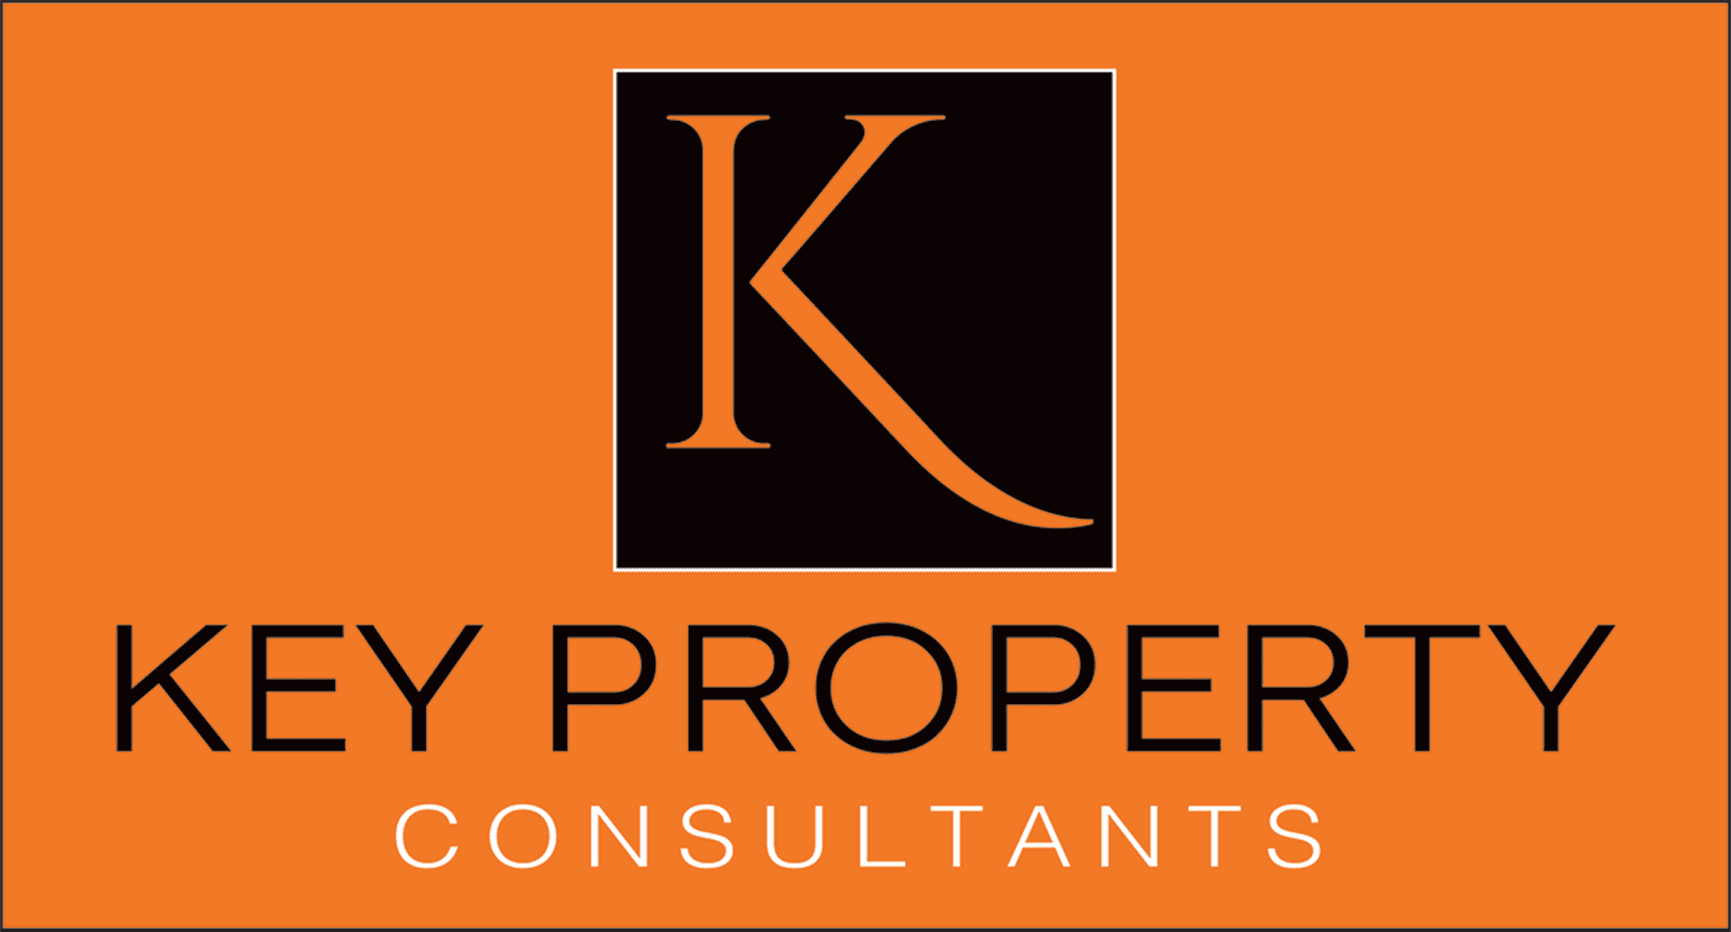 Key Property Consultants